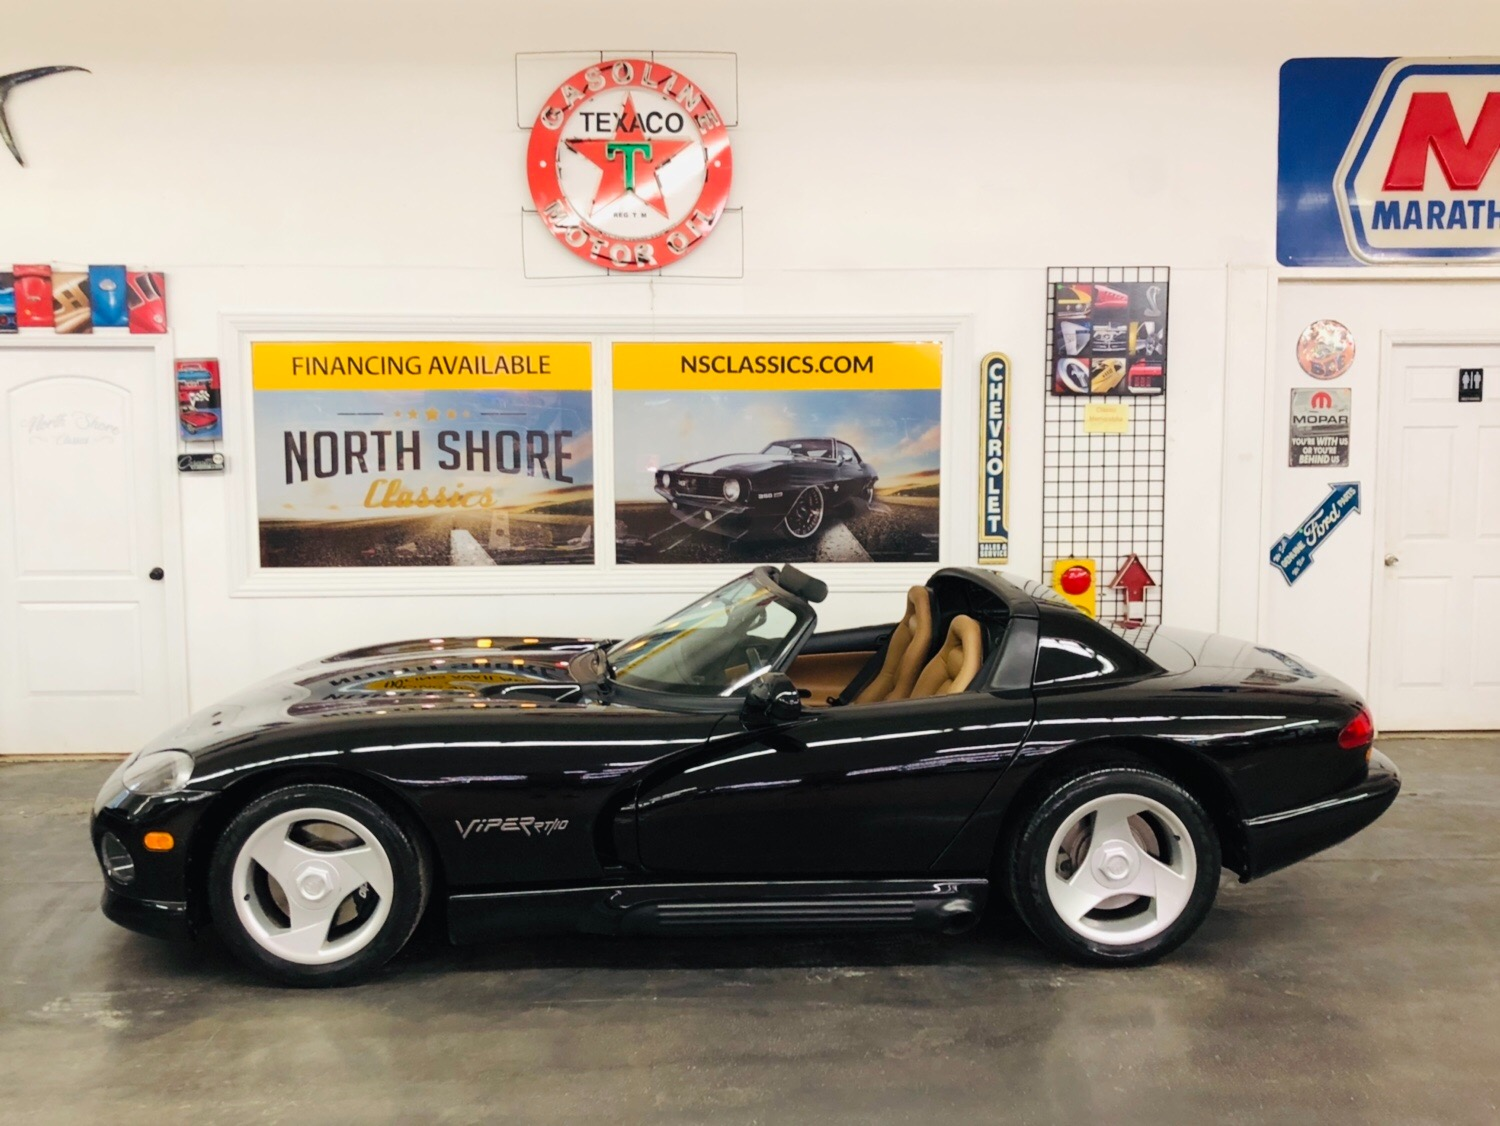 Used 1995 Dodge Viper -ONLY 10k MILES-RT/10 Roadster-1 of 1,430- FACTORY AC OPTION-SEE VIDEO | Mundelein, IL